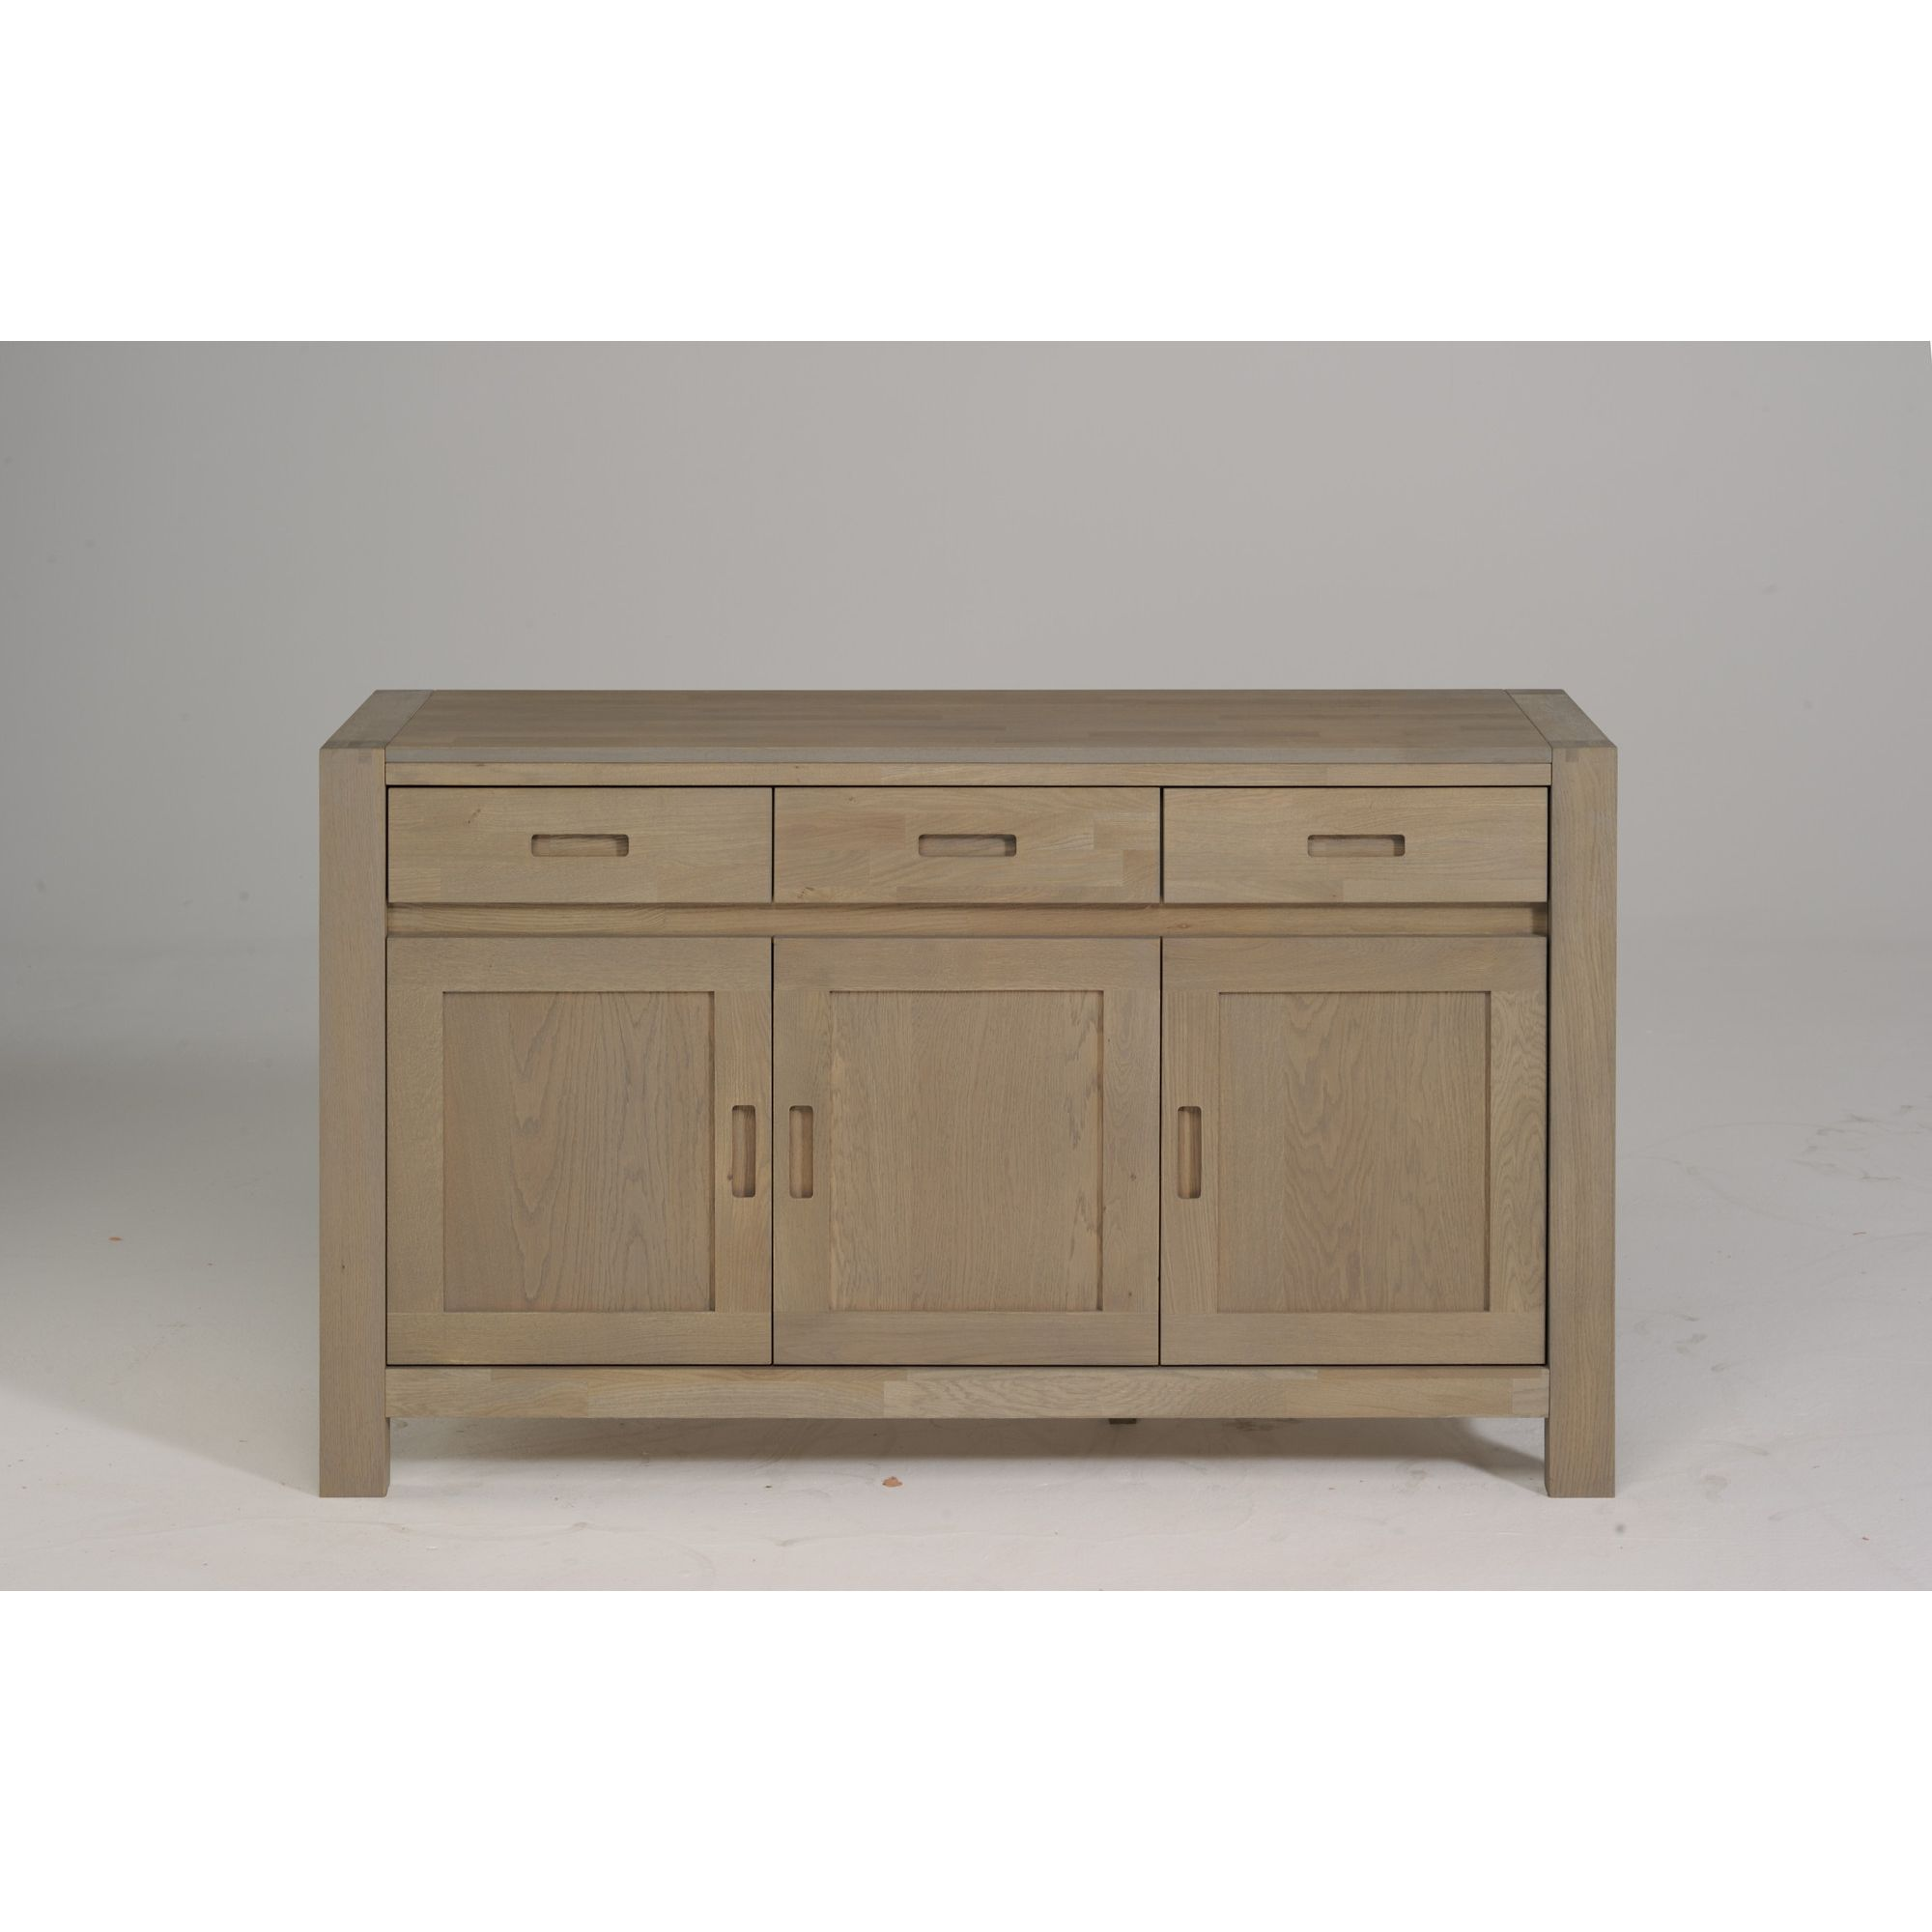 Parisot Ethan 3 Door Sideboard at Tesco Direct